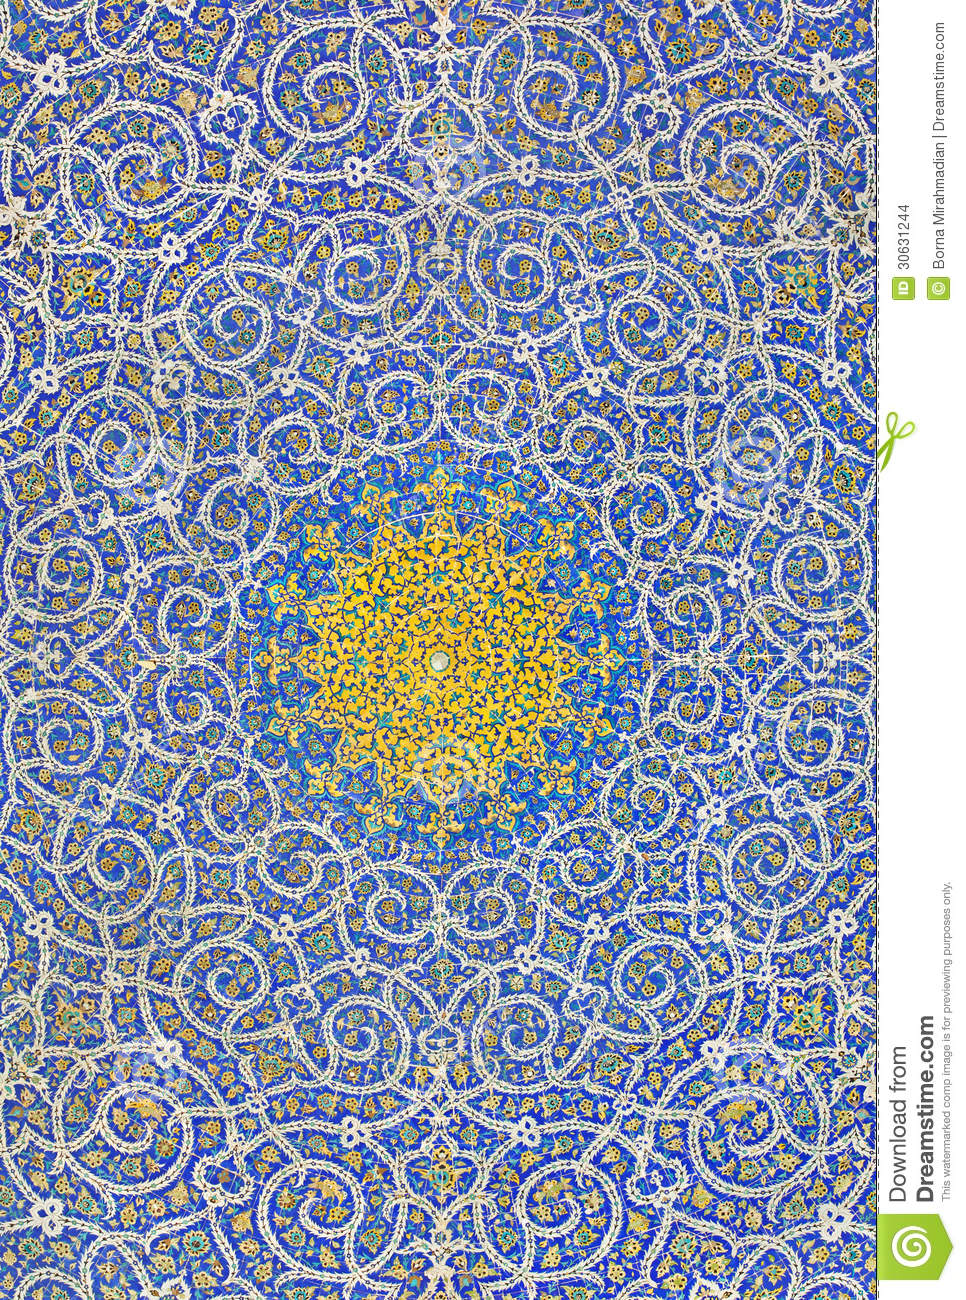 Middle eastern patterns for Interior design and decoration 6th edition